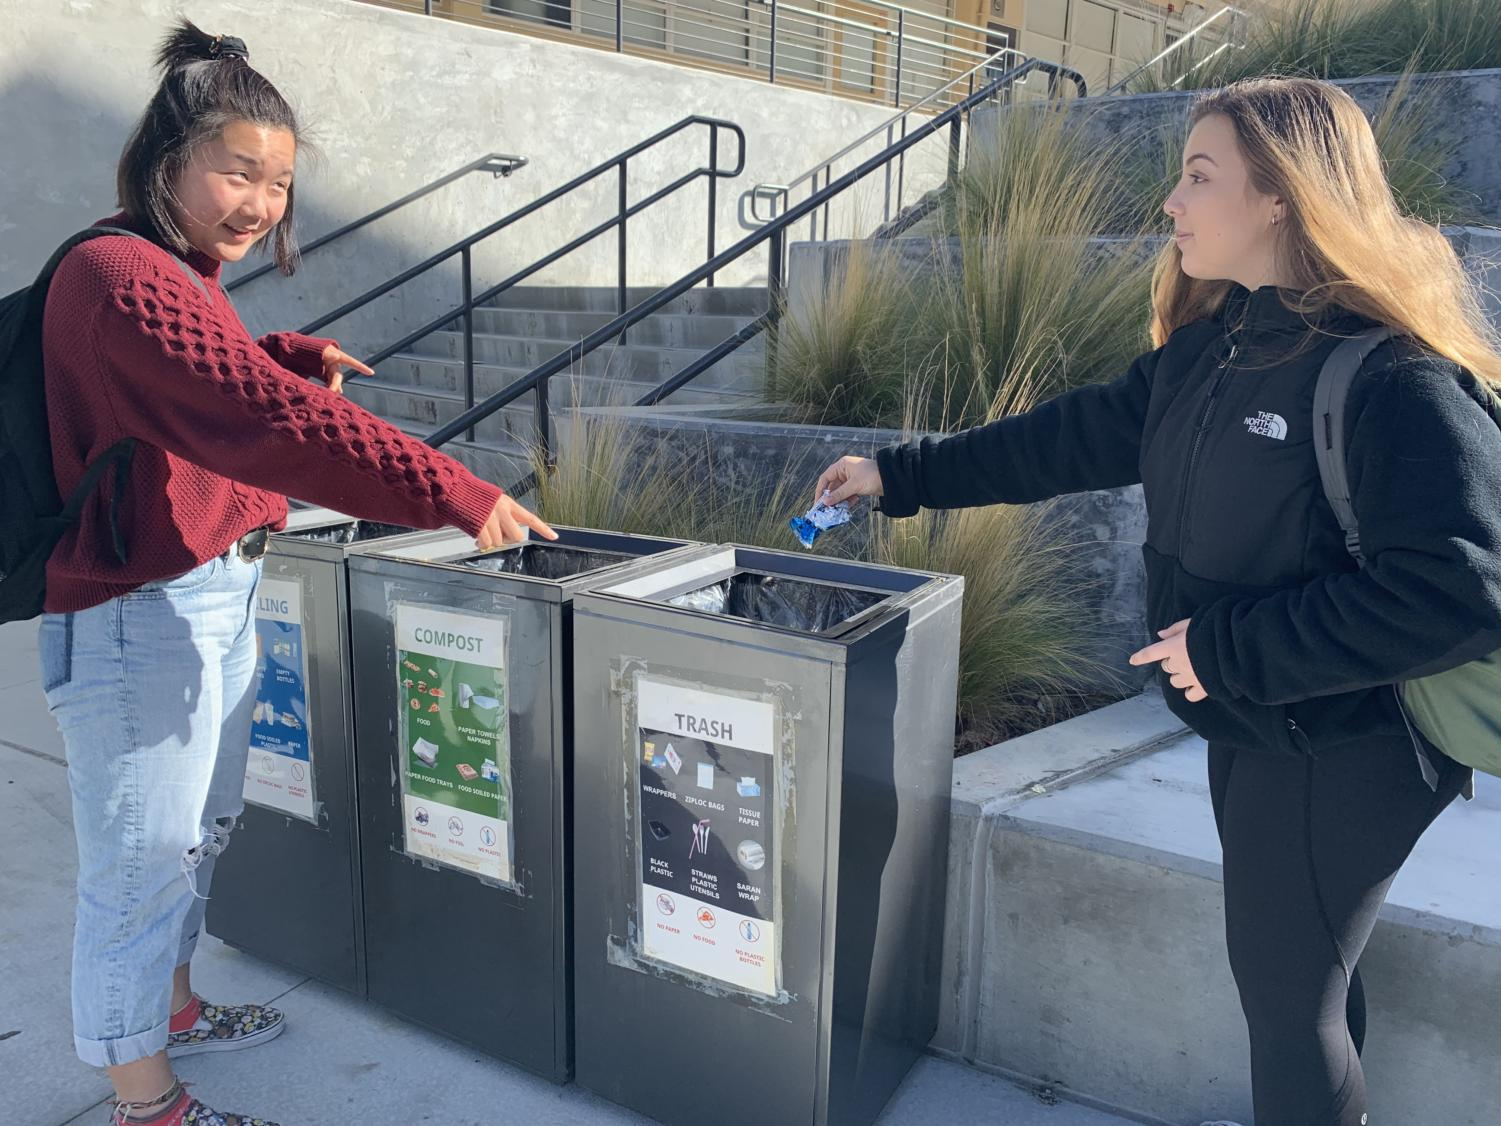 Eva Robertson, sophomore directs Liz Gurevich, sophomore, to the right bin to dispose of her trash.